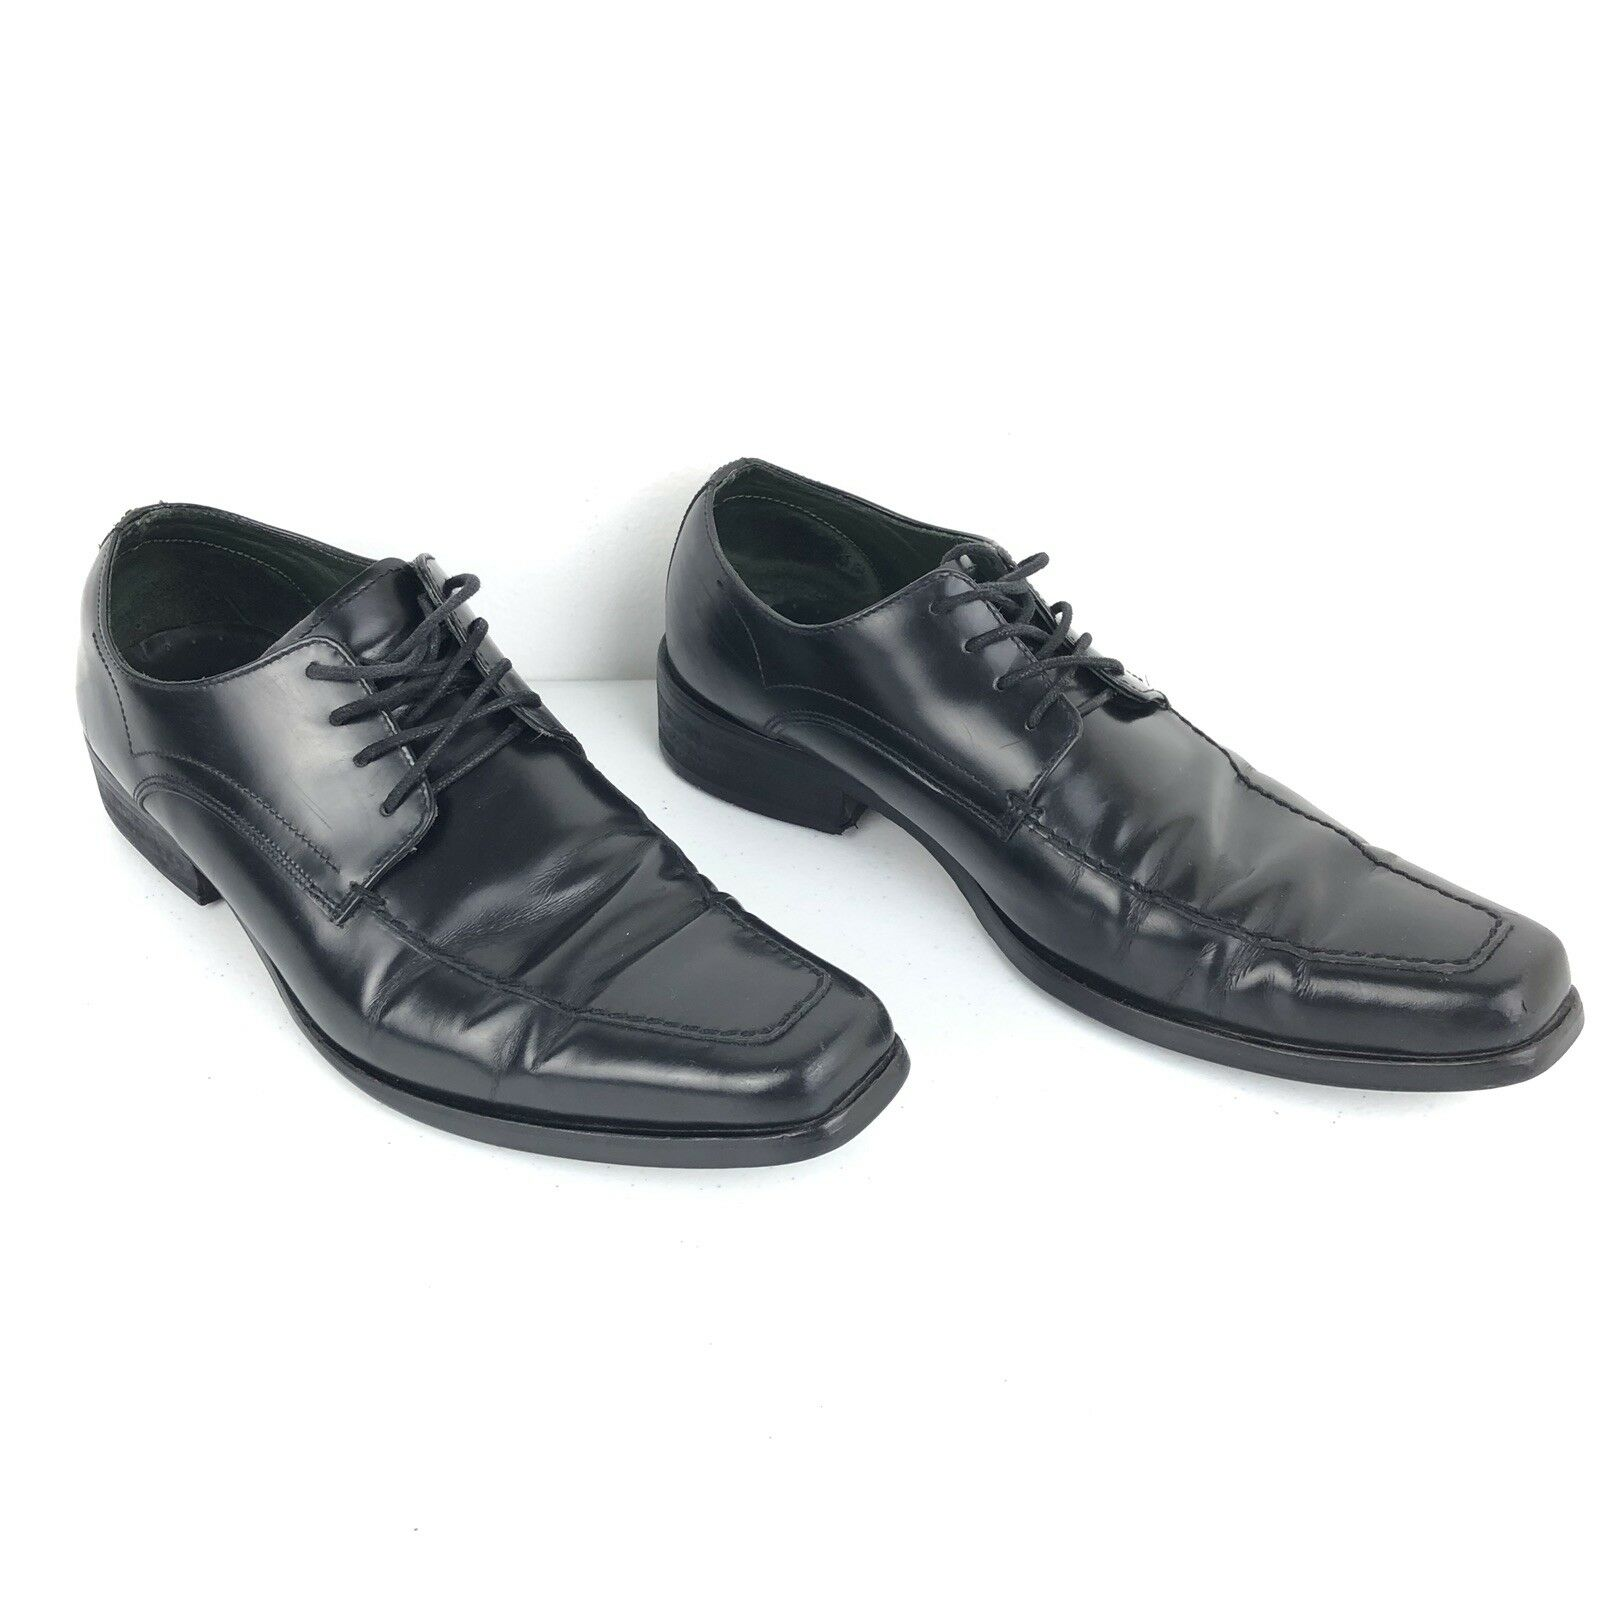 Kenneth Cole New York Mens Dress Shoes Pointed Toe Black Leather Size 9.5